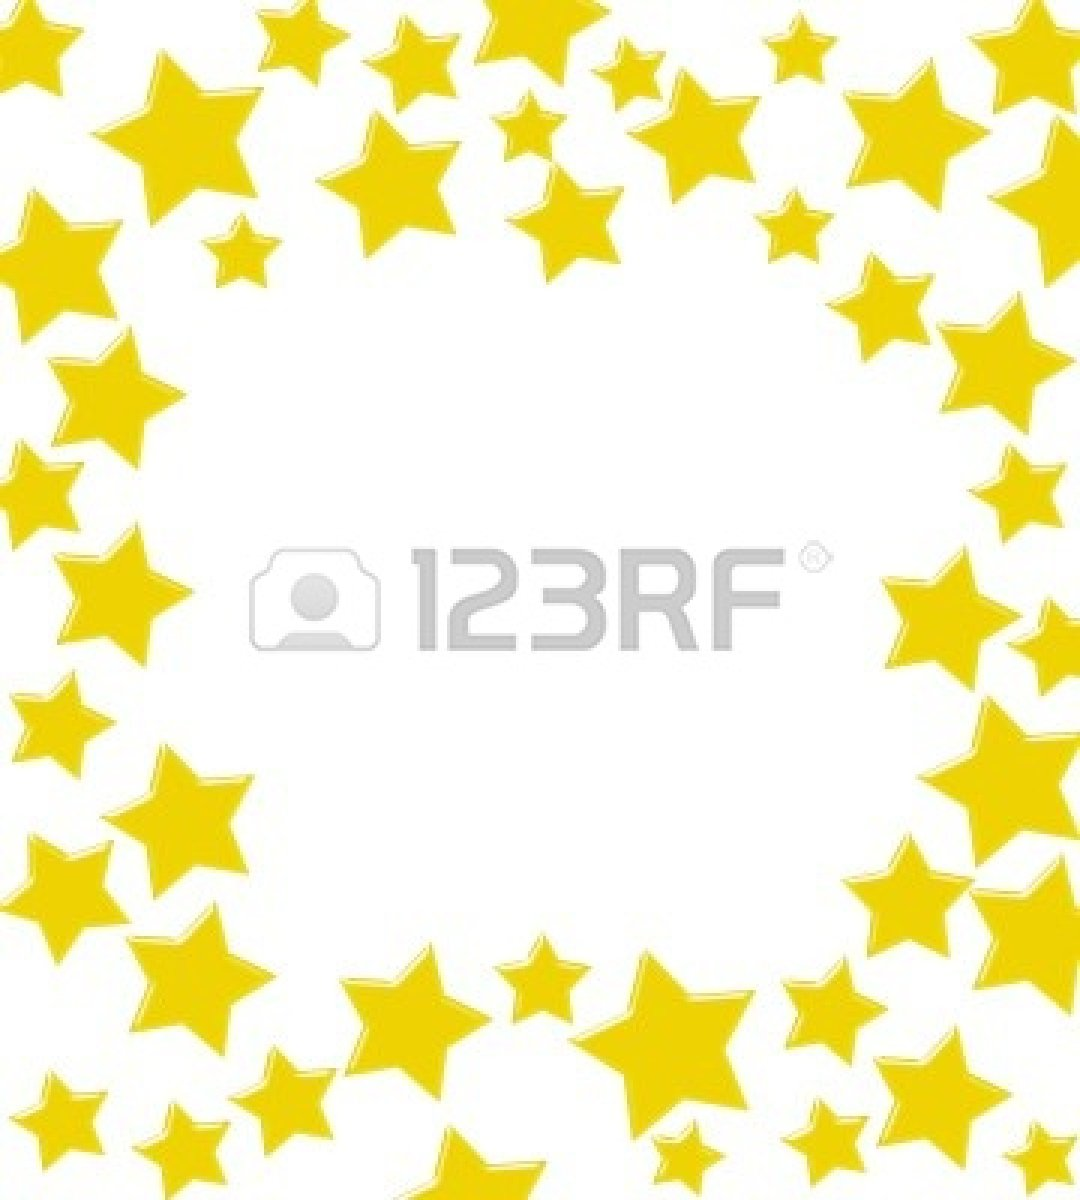 Background clipart star #1